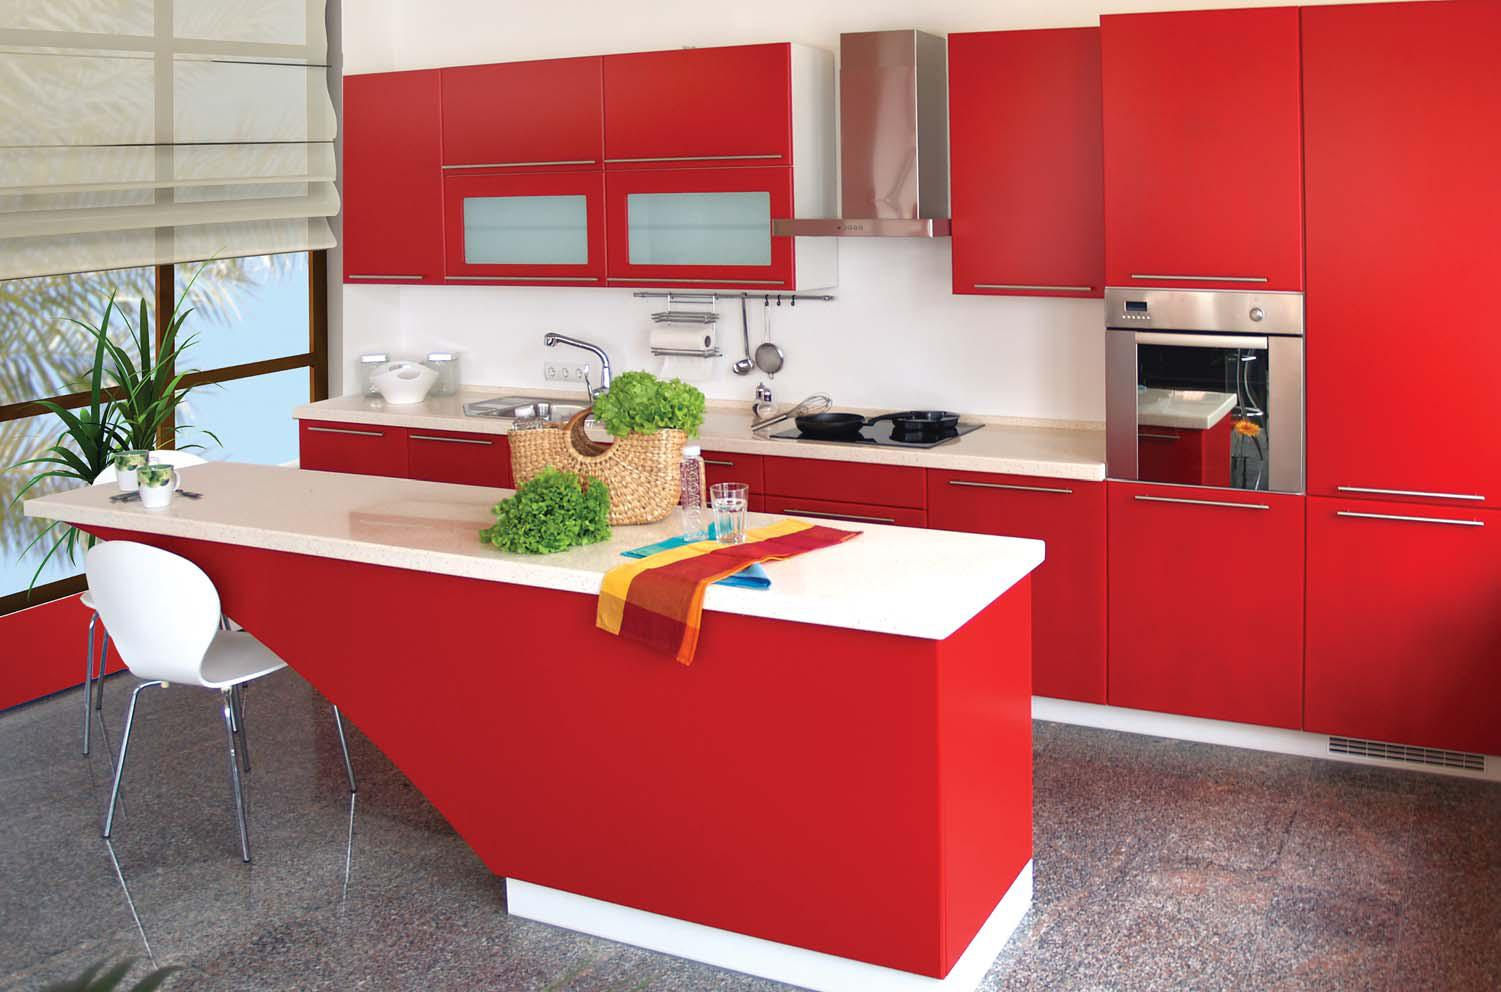 Ensemble de meubles de cuisine design 10 0 100 0 for Meuble design cuisine